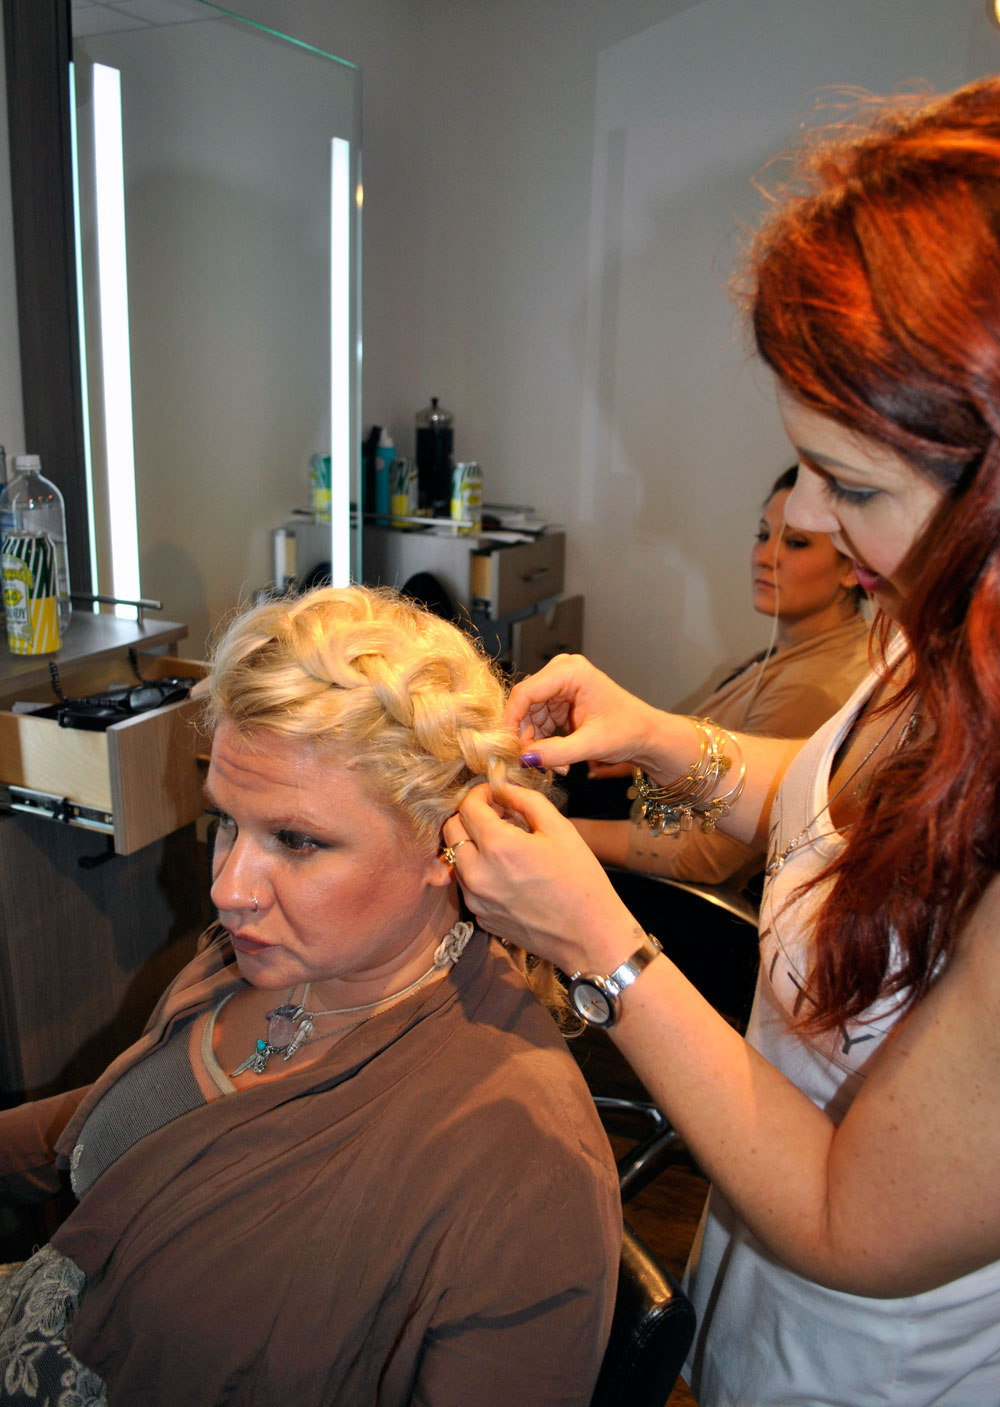 Stylists practicing updos at Shu Uemura education event